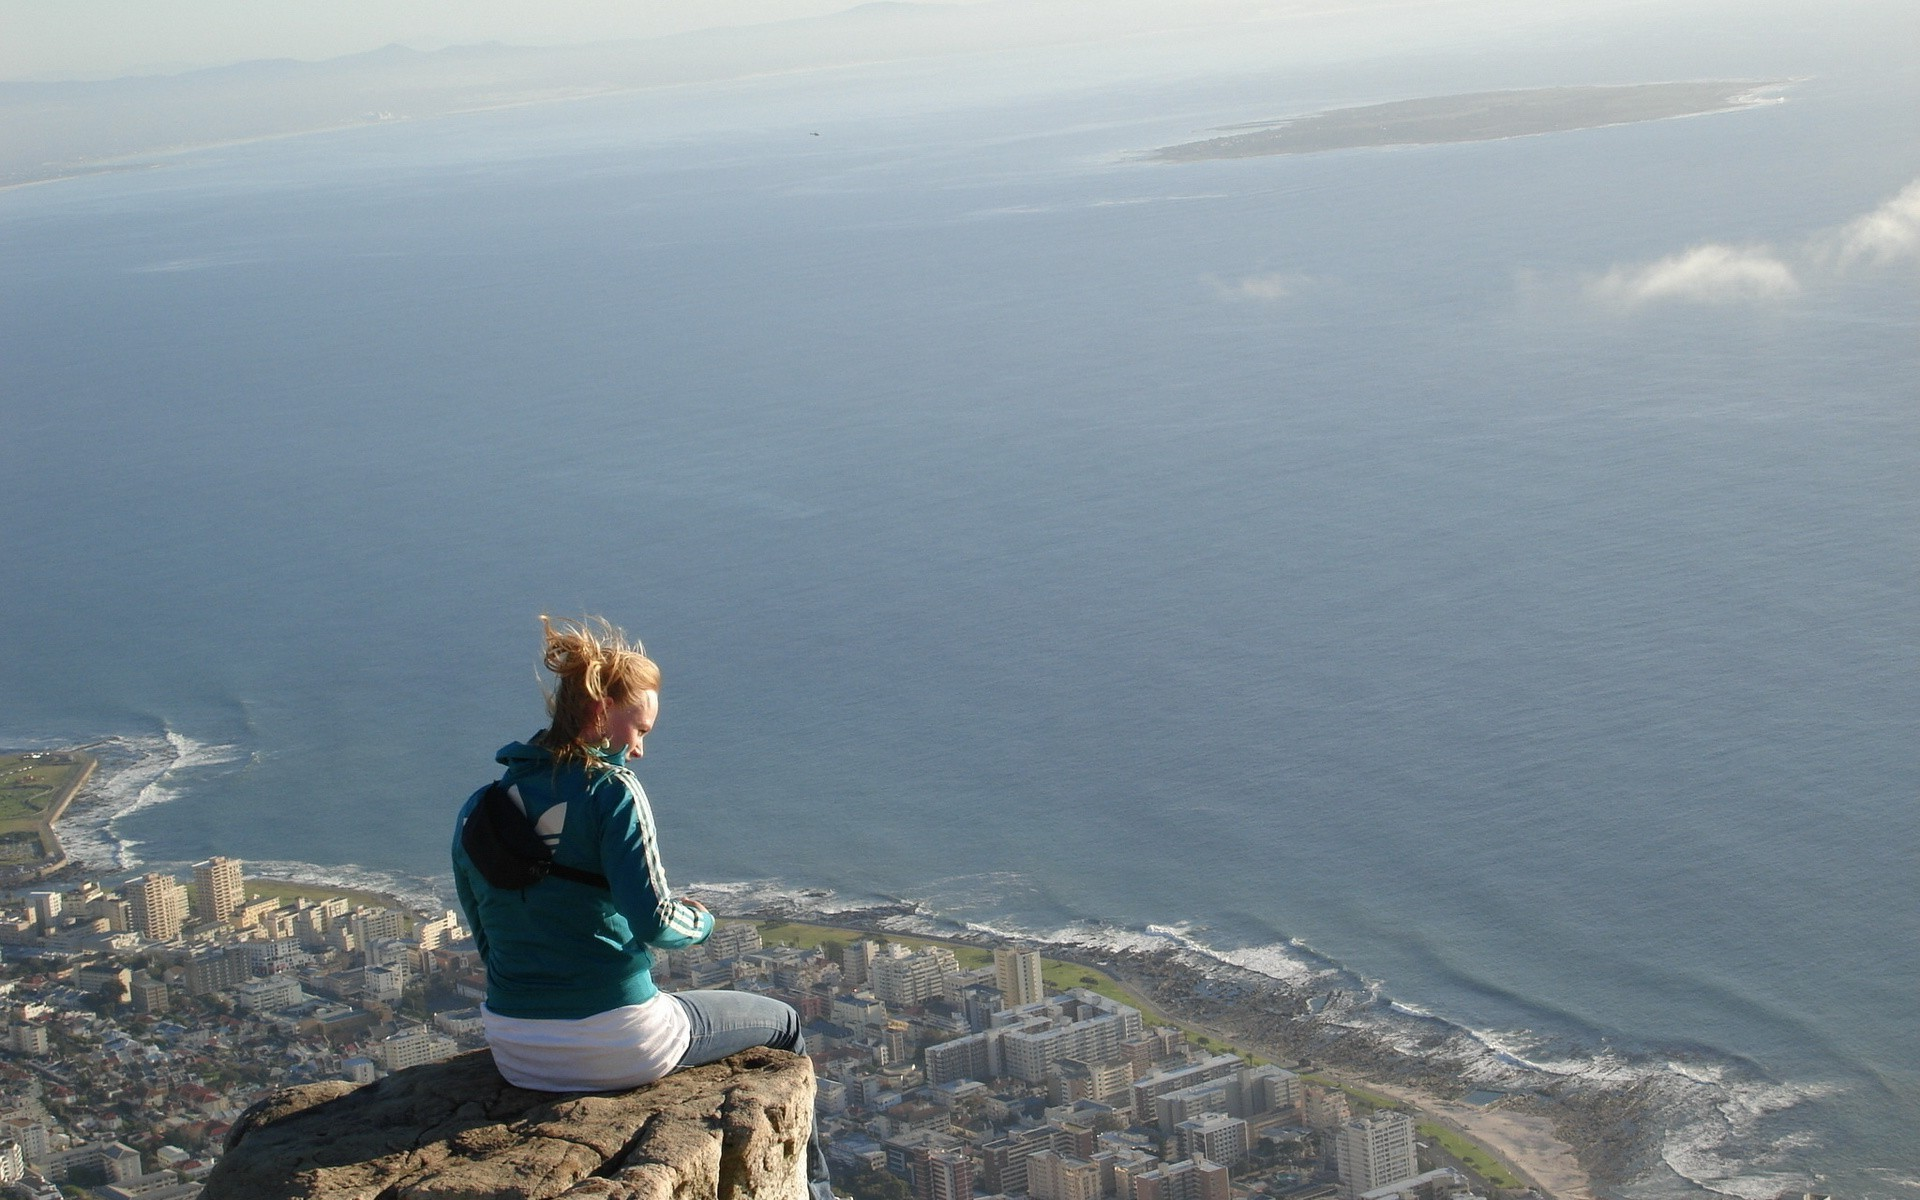 Brave Girl Sitting On The Edge Of A Cliff Above The Town